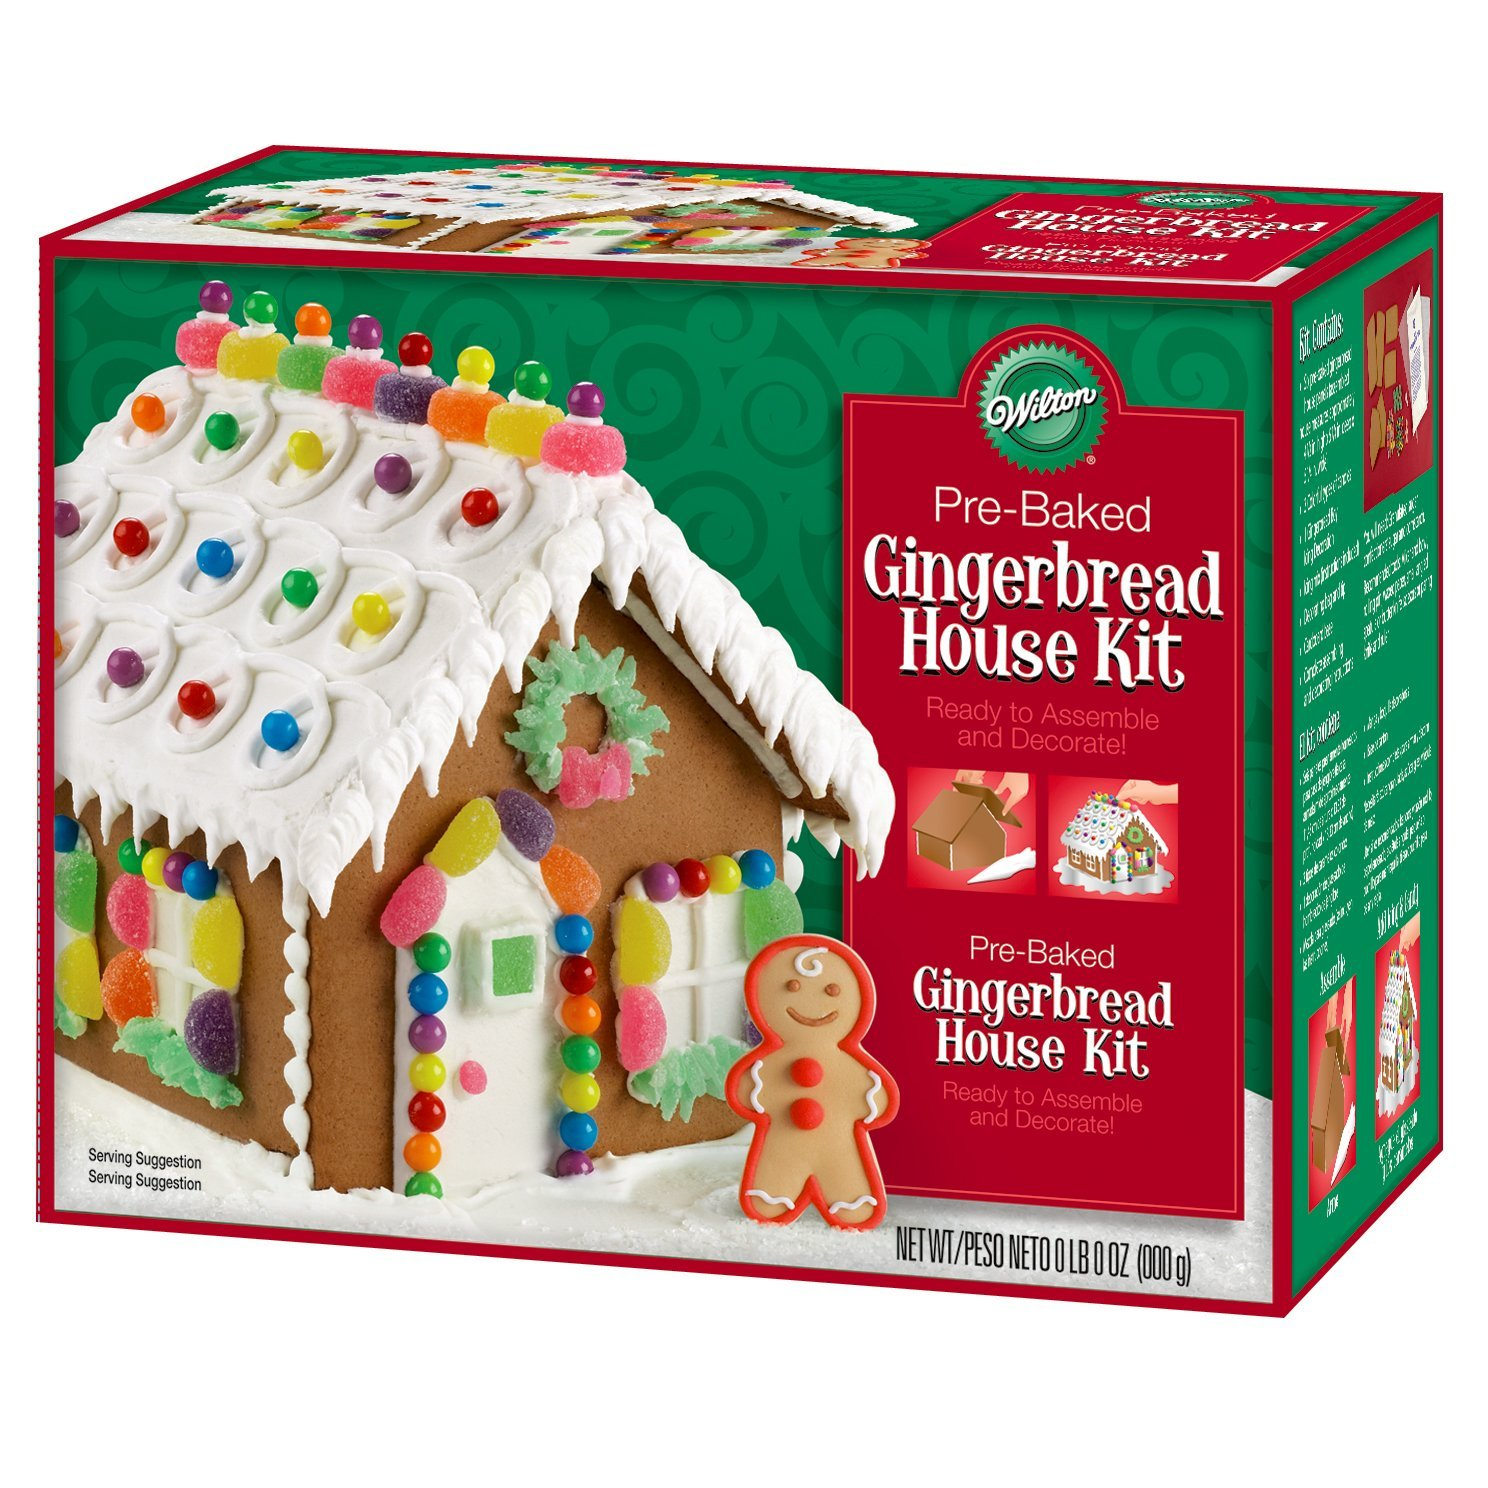 Mini Gingerbread House Diy: 25 Days Of Christmas: Day 13